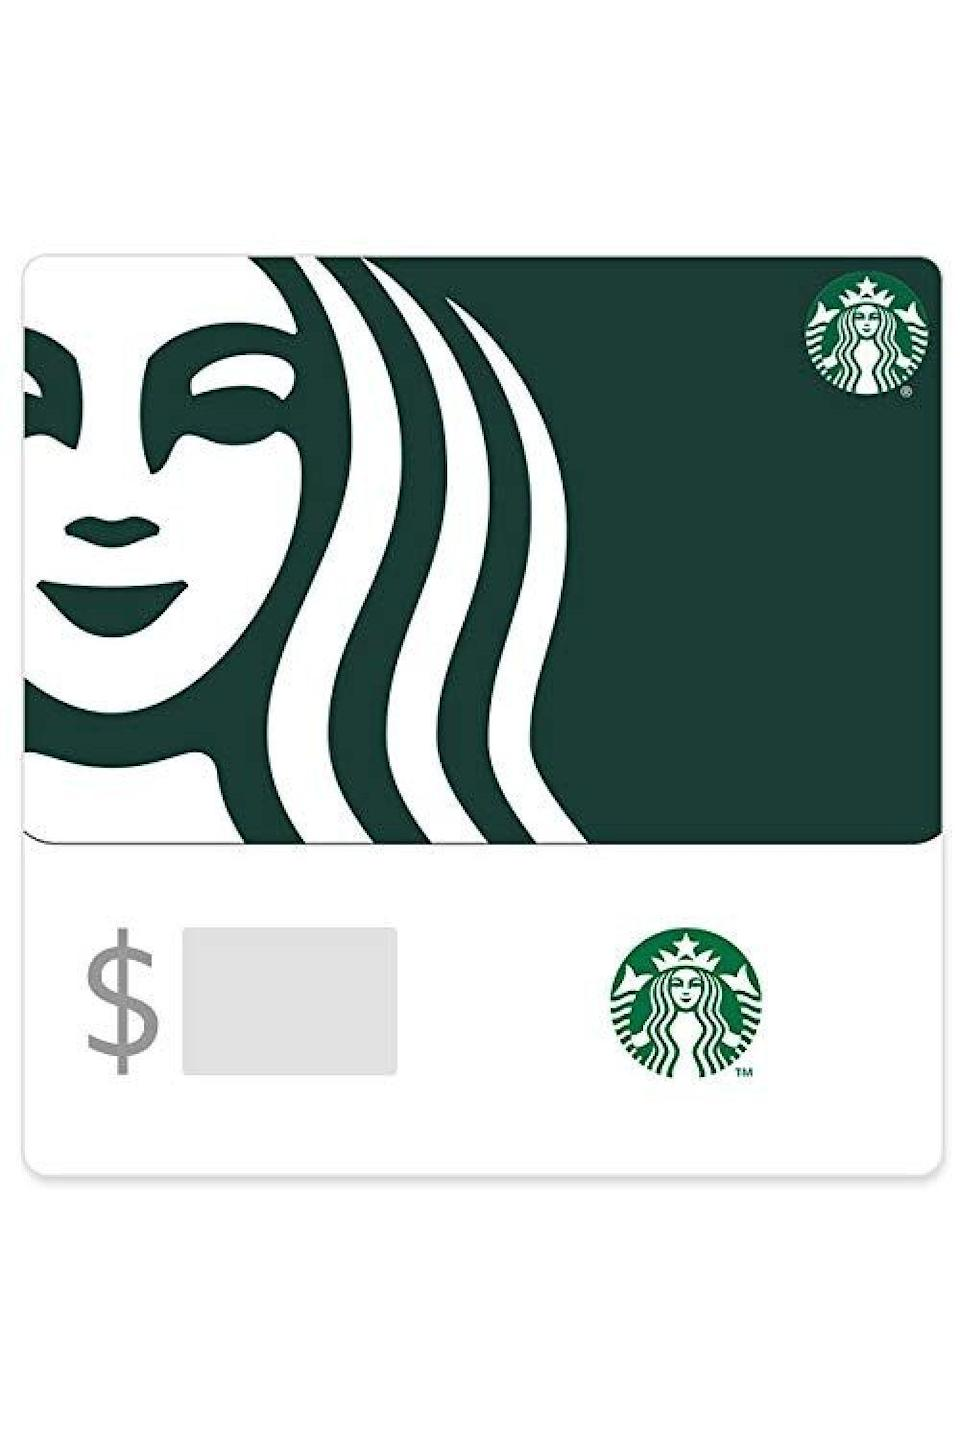 """<p><strong>Starbucks</strong></p><p>amazon.com</p><p><a href=""""https://www.amazon.com/dp/B076PXZBYS?tag=syn-yahoo-20&ascsubtag=%5Bartid%7C10049.g.34229001%5Bsrc%7Cyahoo-us"""" rel=""""nofollow noopener"""" target=""""_blank"""" data-ylk=""""slk:Shop Now"""" class=""""link rapid-noclick-resp"""">Shop Now</a></p><p>Let's face it, they're already spending way too much money on Starbucks runs every morning (okay, fine, and every afternoon), so help the coffee drinker in your life and get 'em a couple cups on you.</p>"""